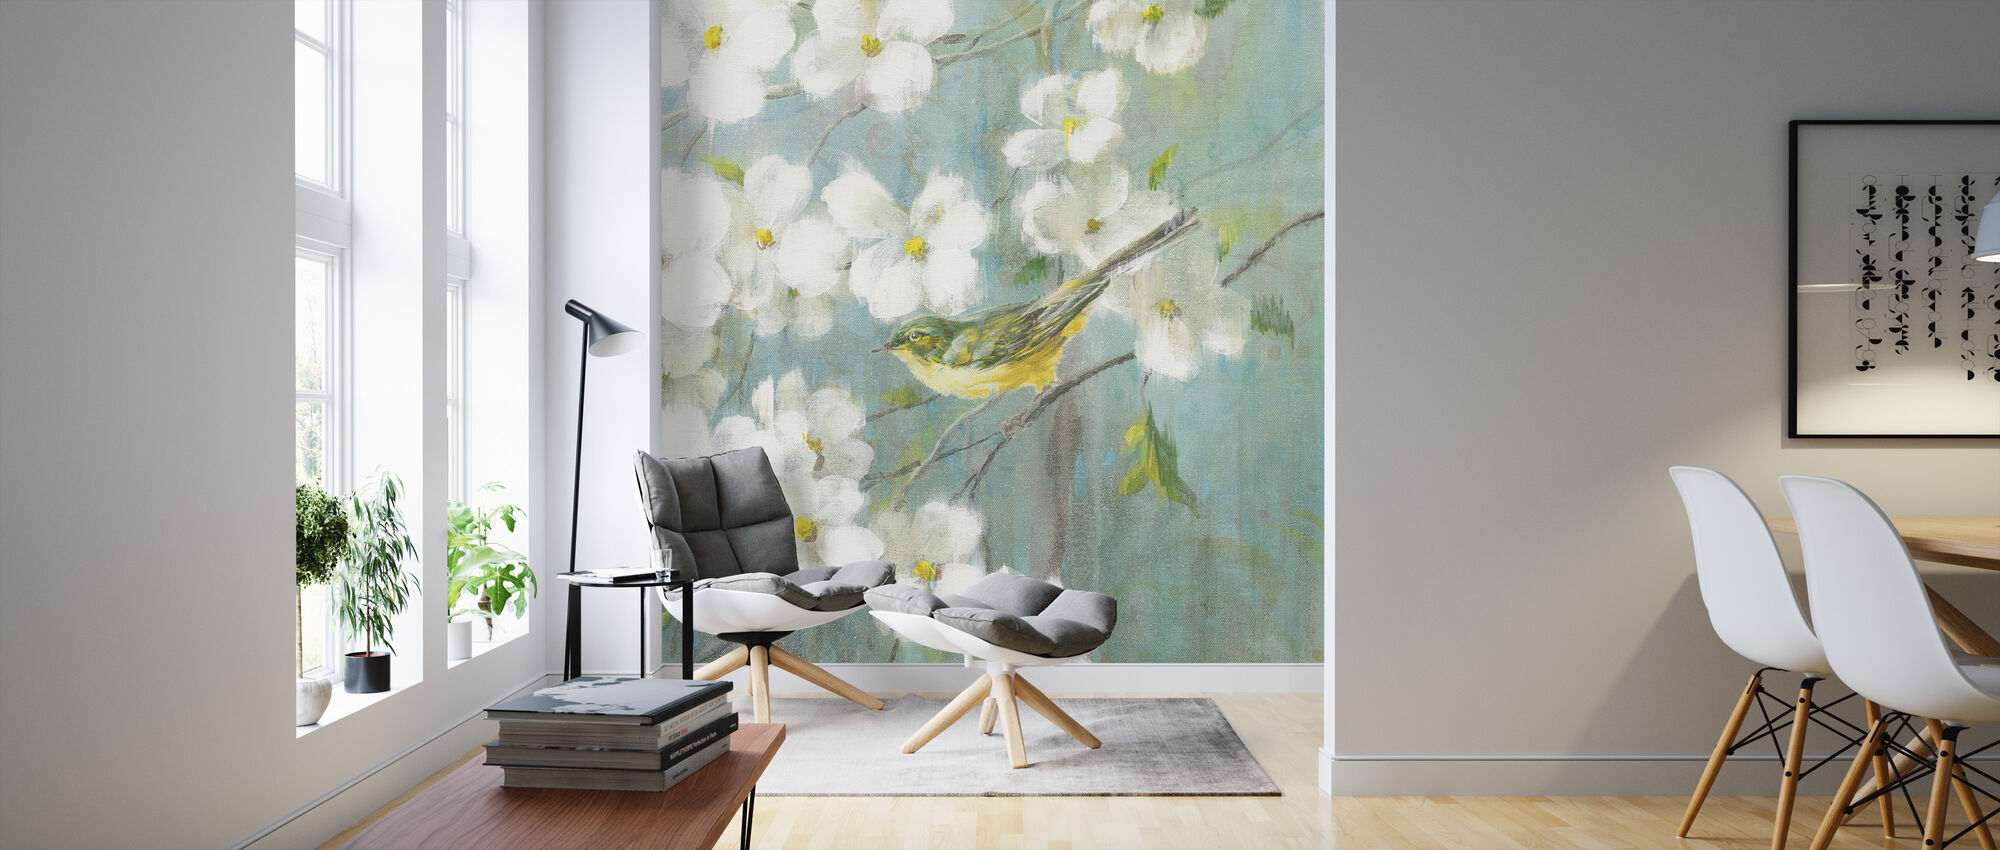 Spring Dream 4 - Wallpaper - Living Room